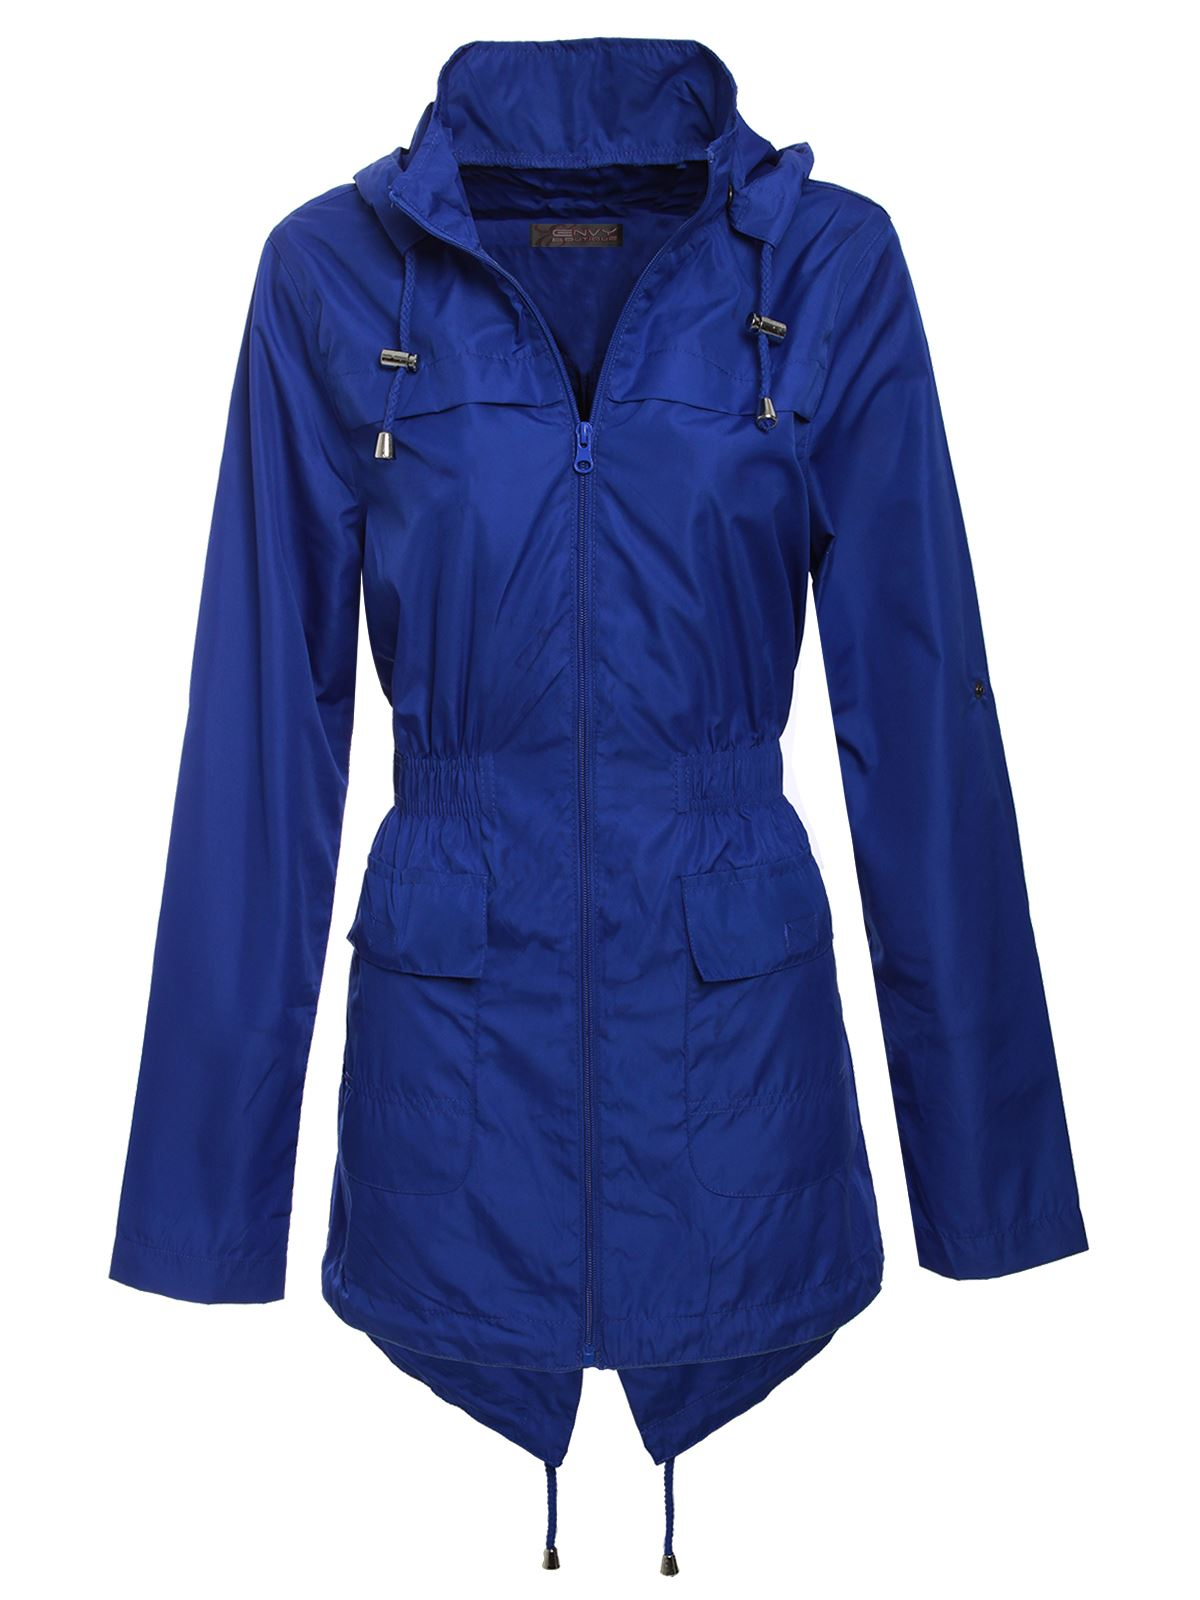 New jackets for women